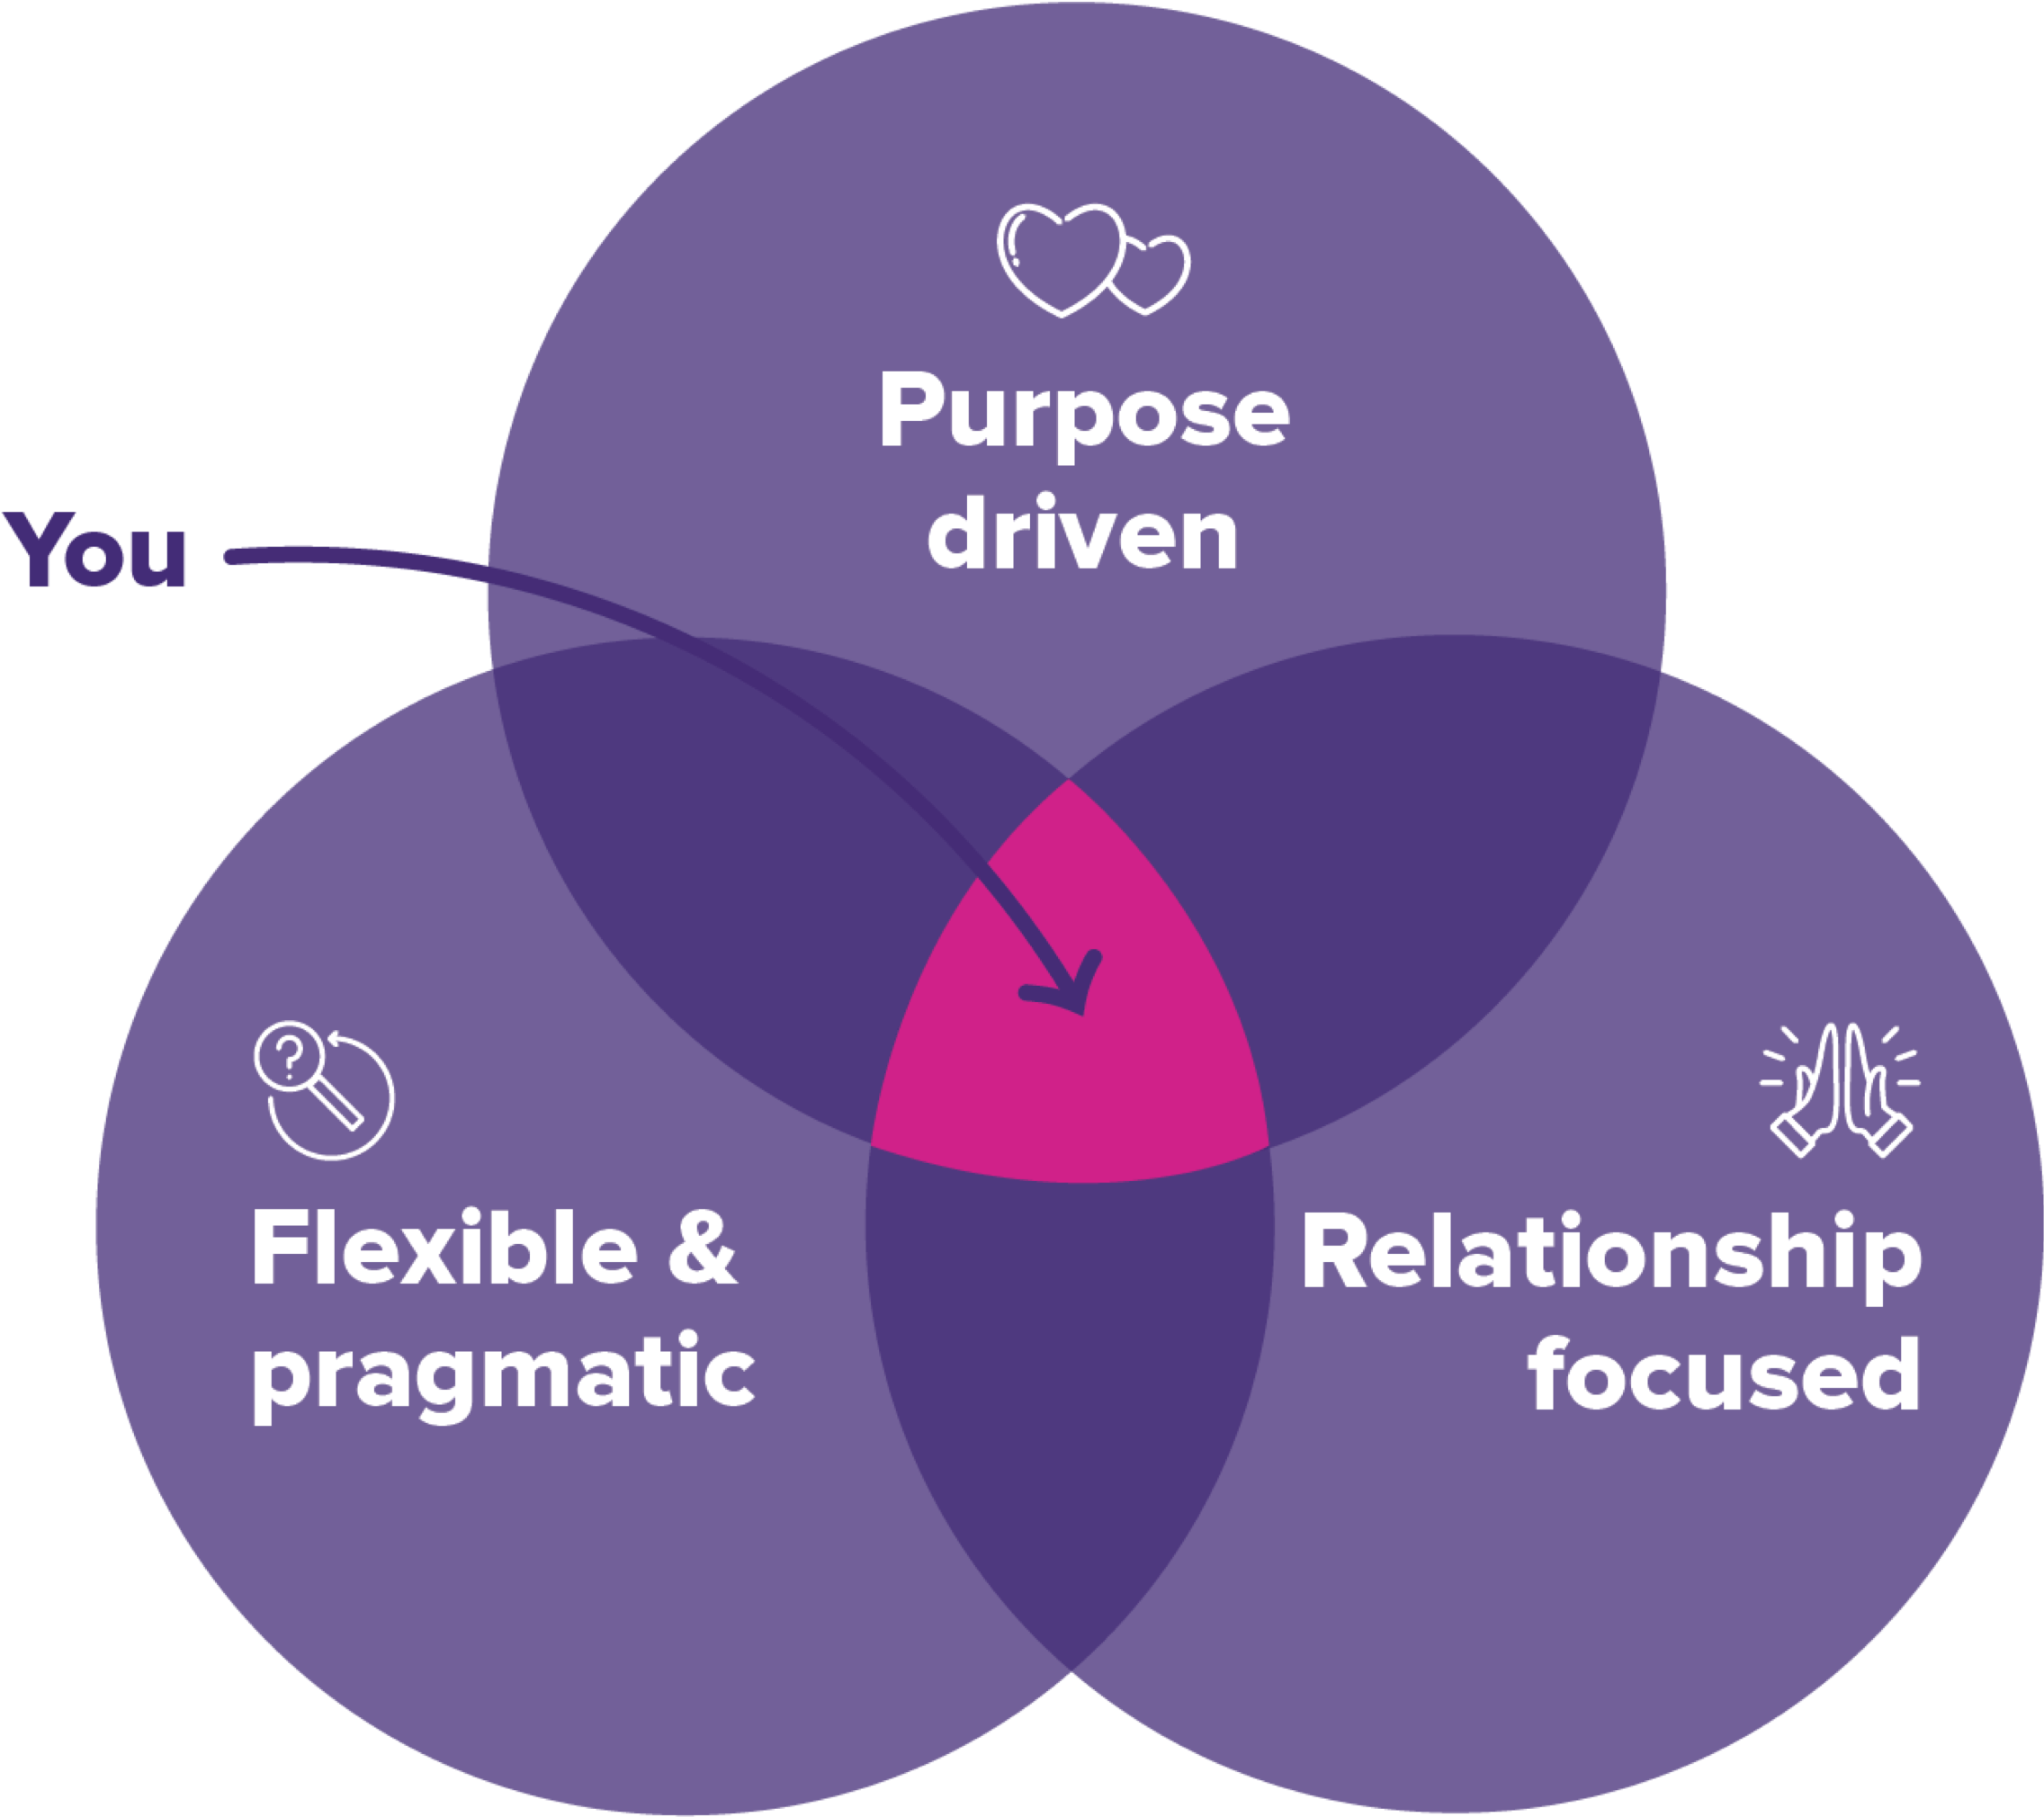 Venn diagram showing that Boost's ideal client is relationship-focused, purpose-driven and pragmatic and flexible.